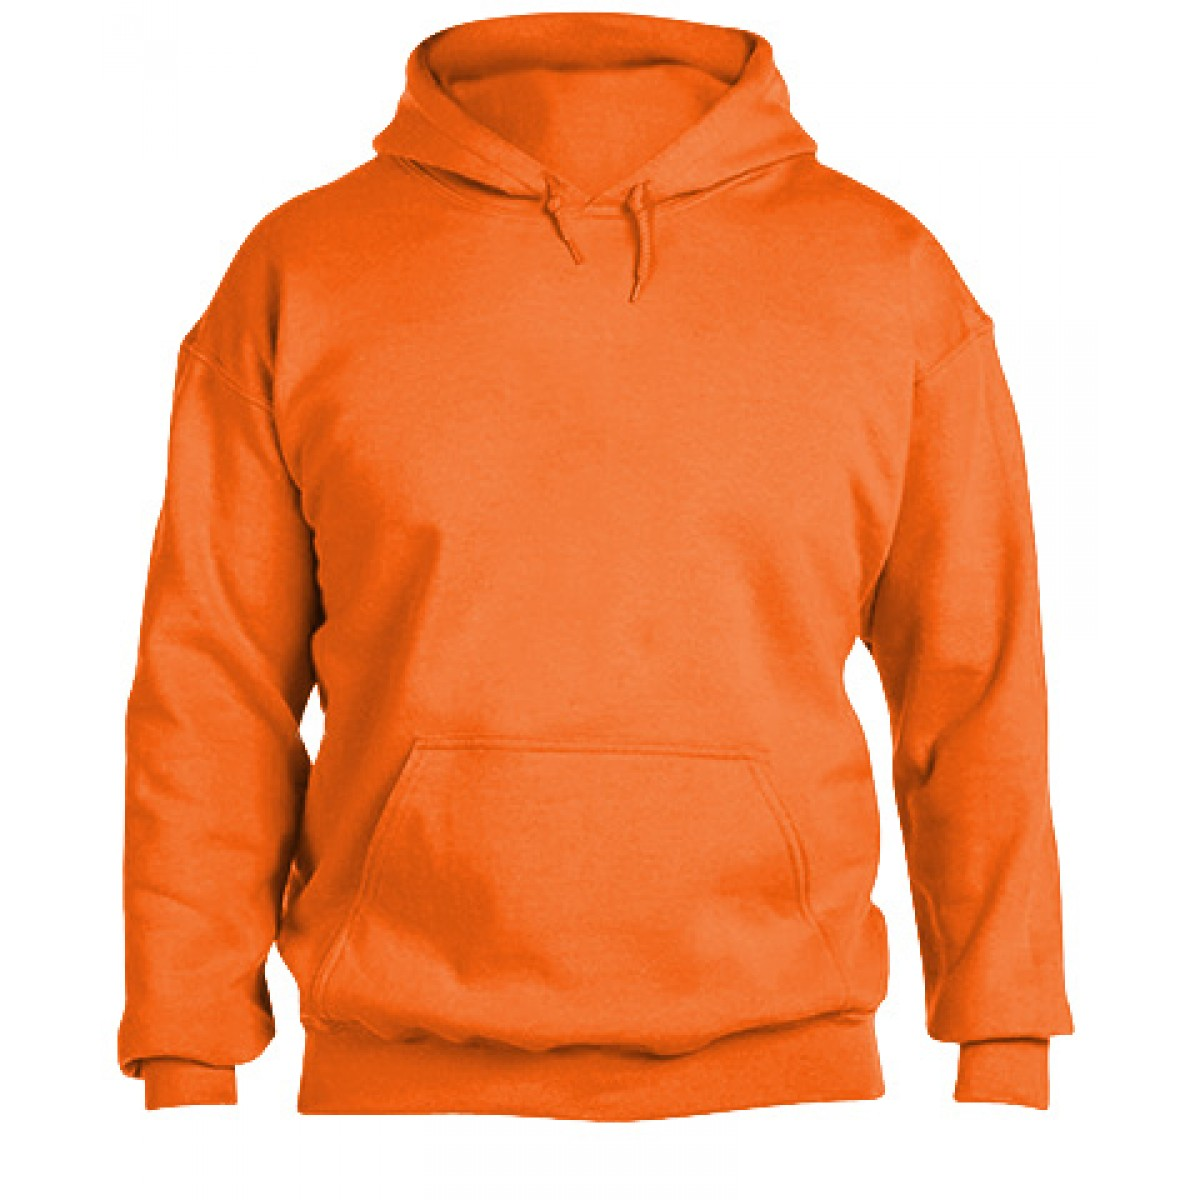 Solid Hooded Sweatshirt  50/50 Heavy Blend-Safety Orange-L